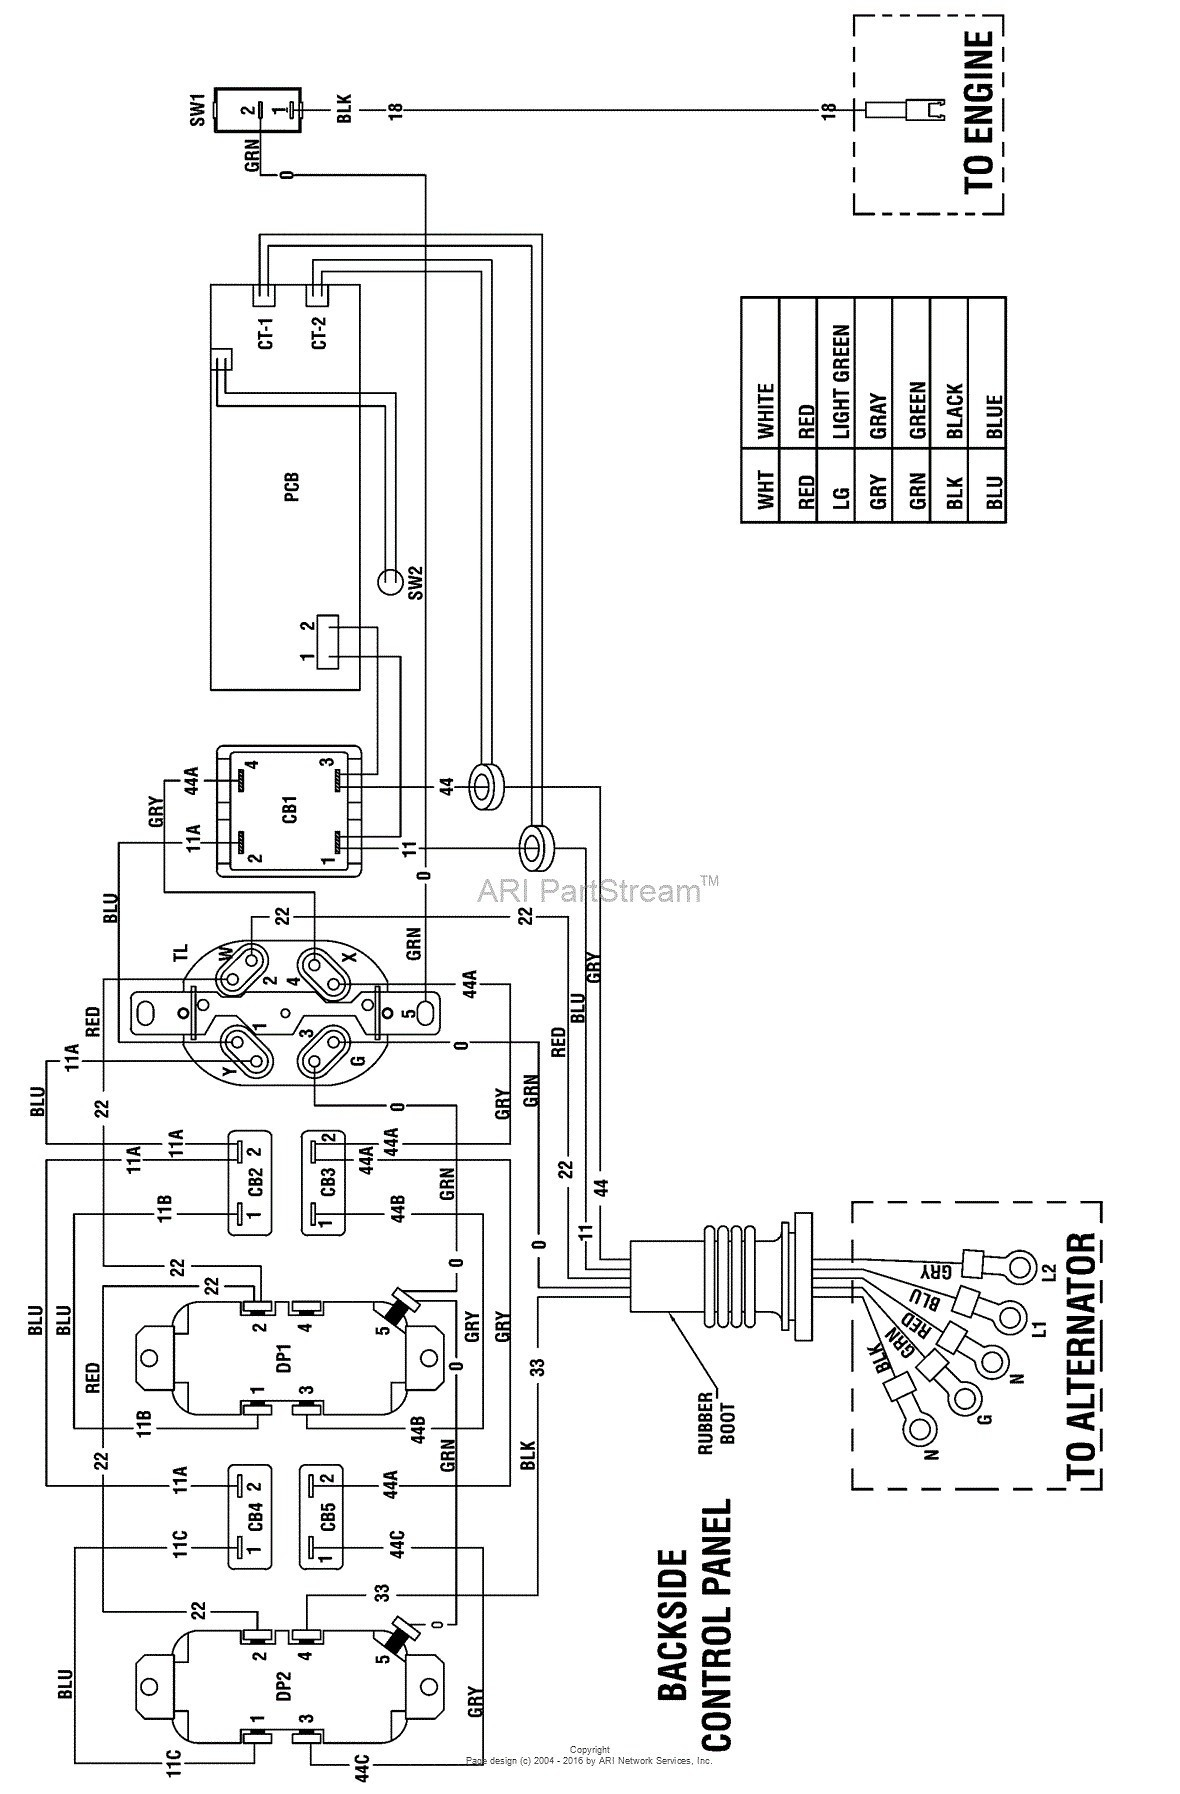 Briggs Stratton Wiring Diagram And Coil | Wiring Diagram - Briggs And Stratton Ignition Coil Wiring Diagram